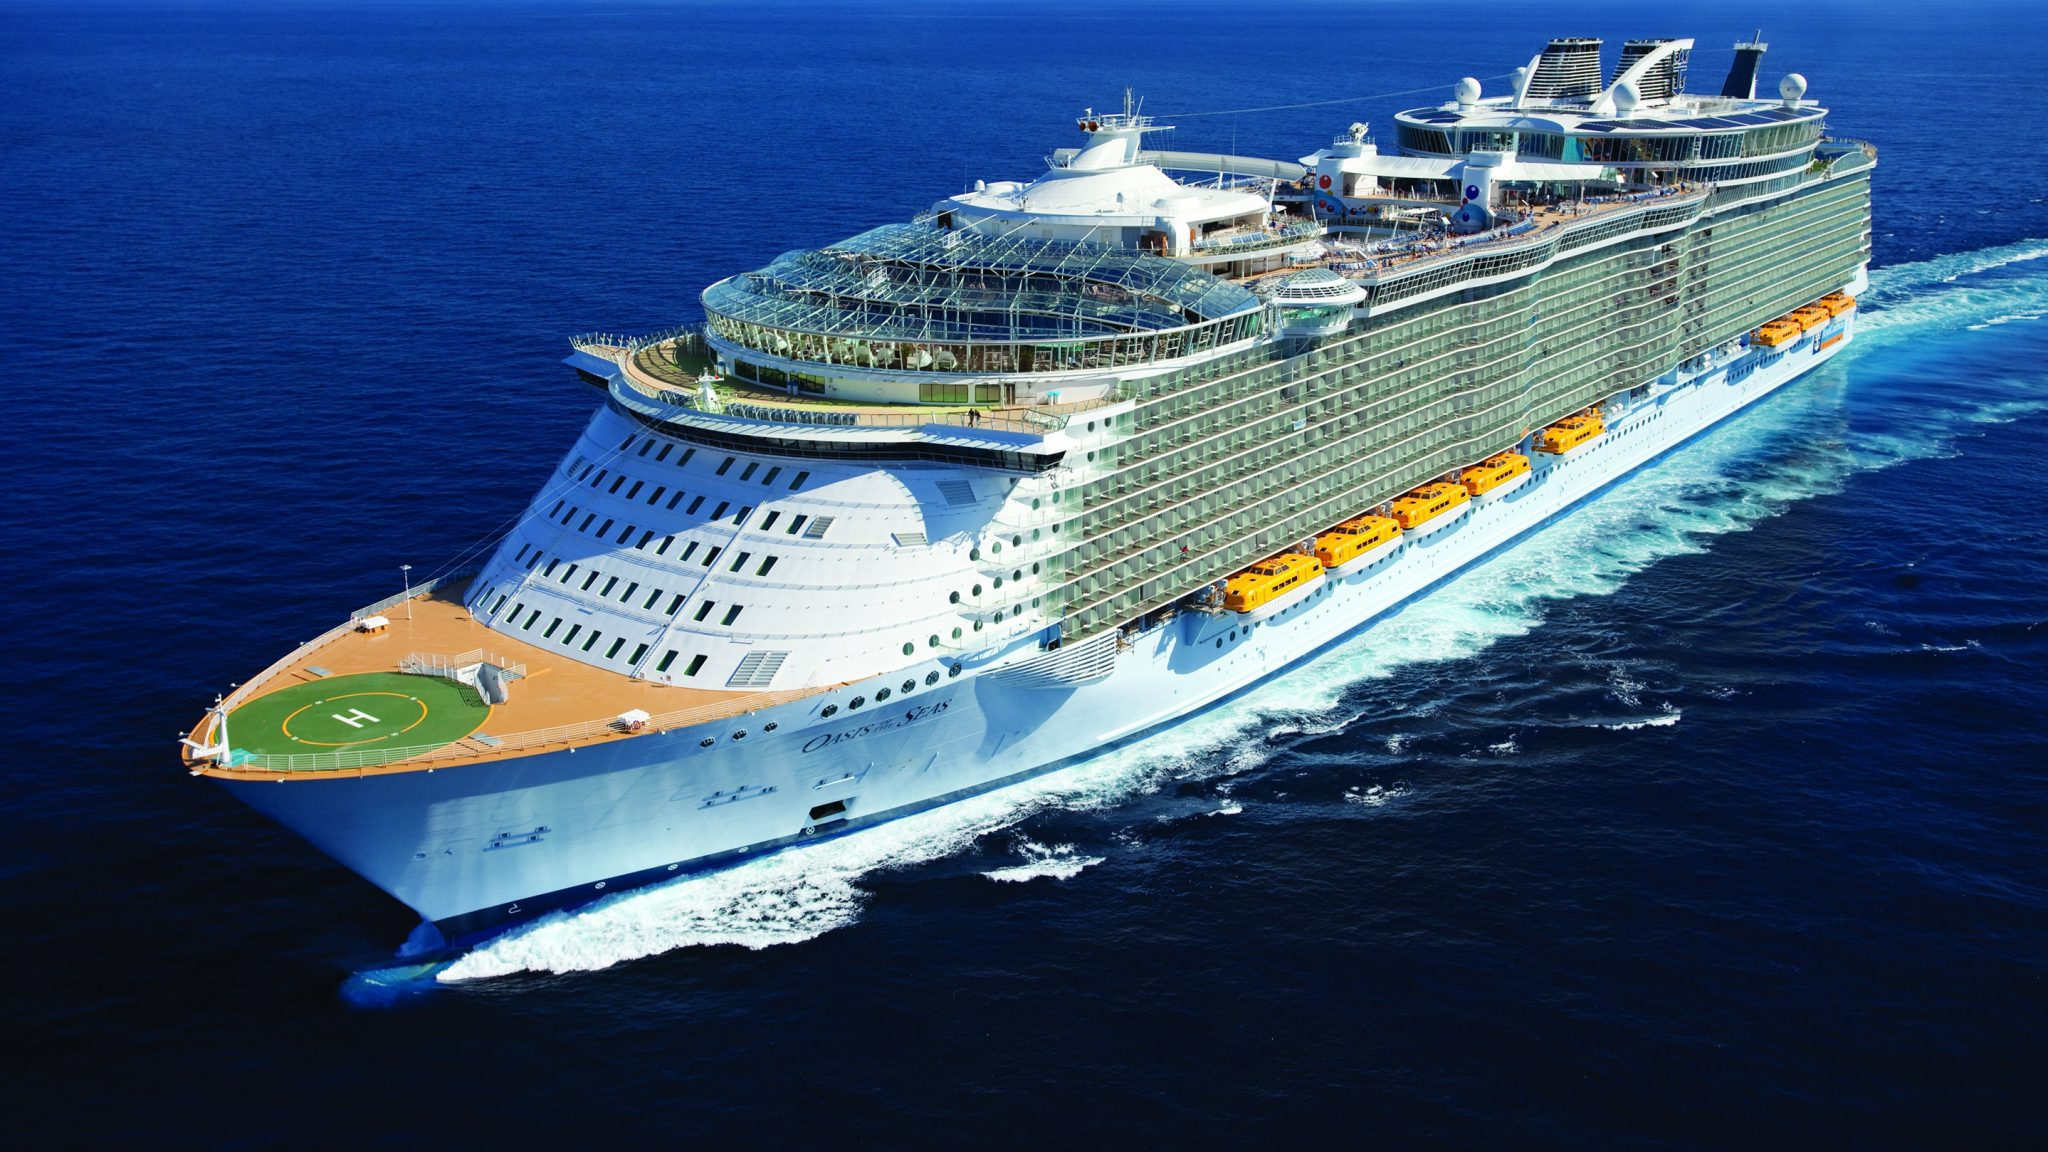 Royal caribbeans oasis of the seas joins canaverals home fleet royal caribbeans oasis of the seasflag ship of the worlds largest class of cruise vesselsjoins canaverals home fleet saturday nov 5 xflitez Images